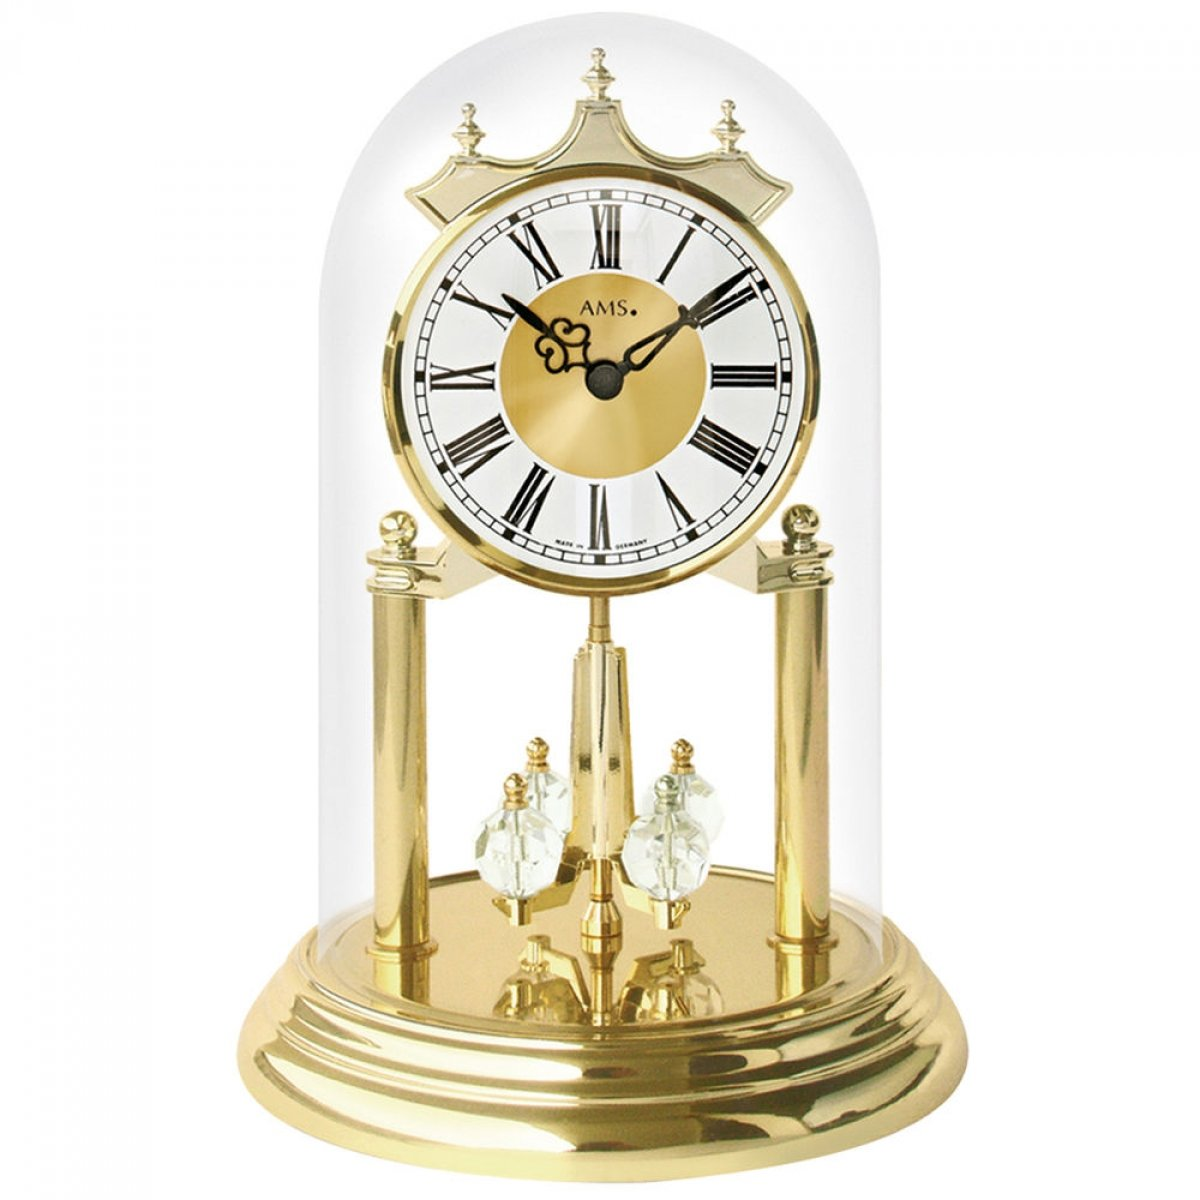 Mantel-clock with quartz movement, anniversary Clocks from AMS AM J1202